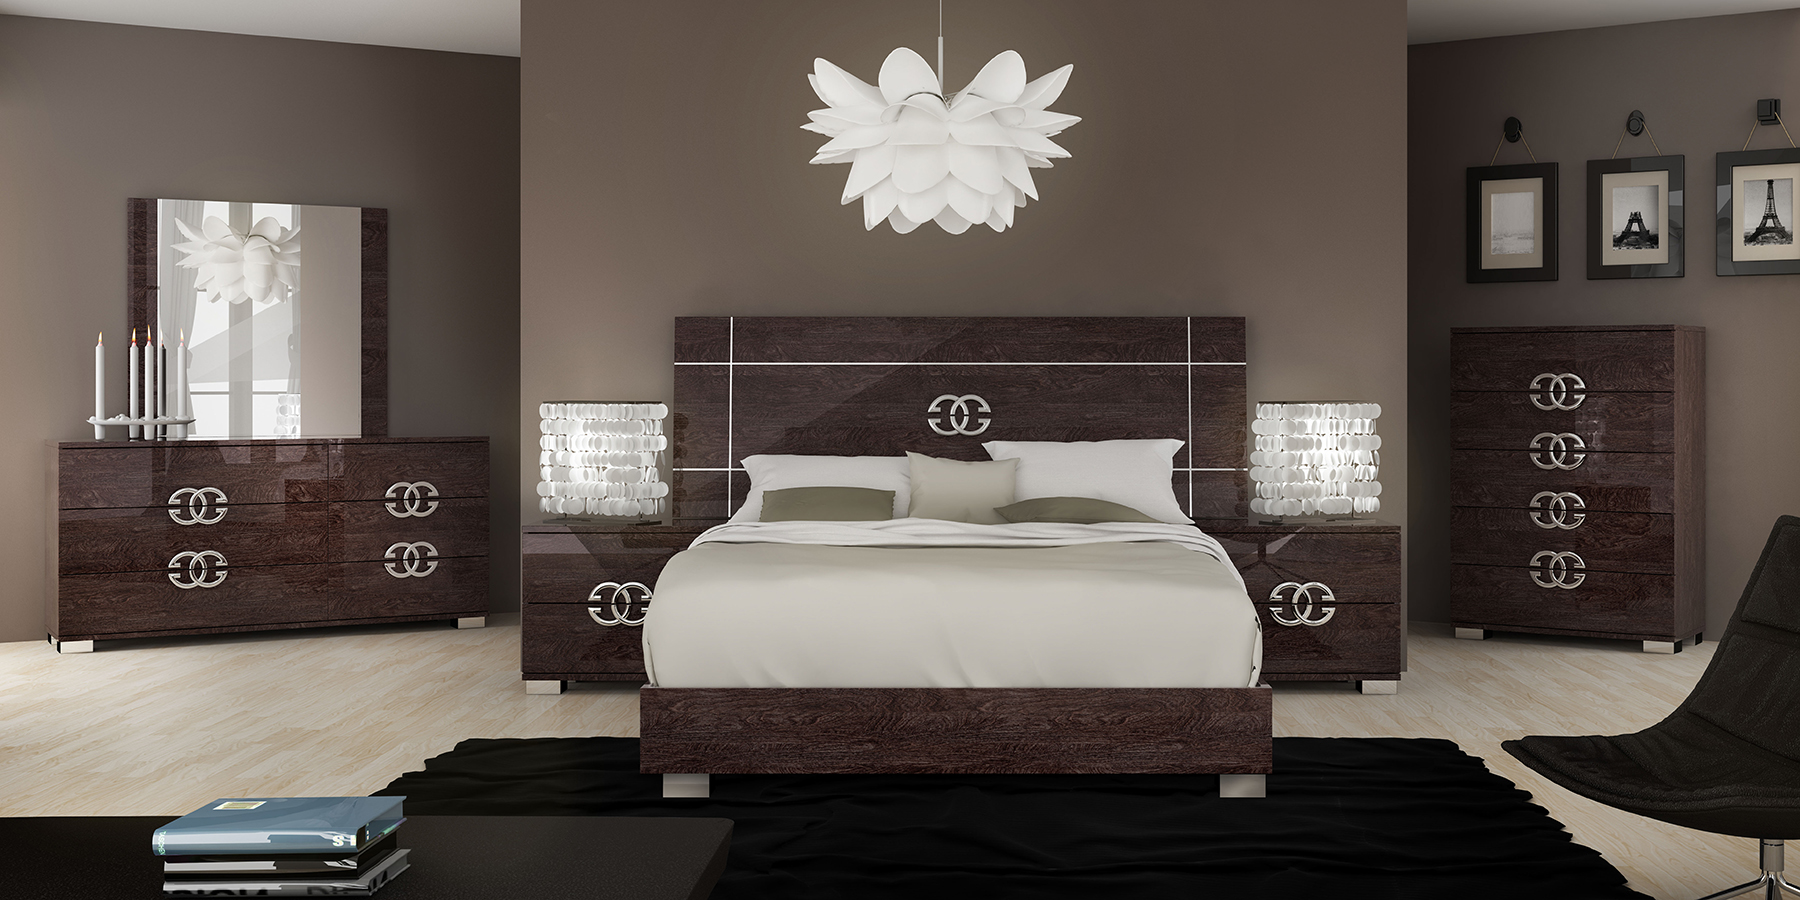 prestige classic modern bedrooms bedroom furniture 10655 | bedroom furniture modern bedrooms prestige classic side 5